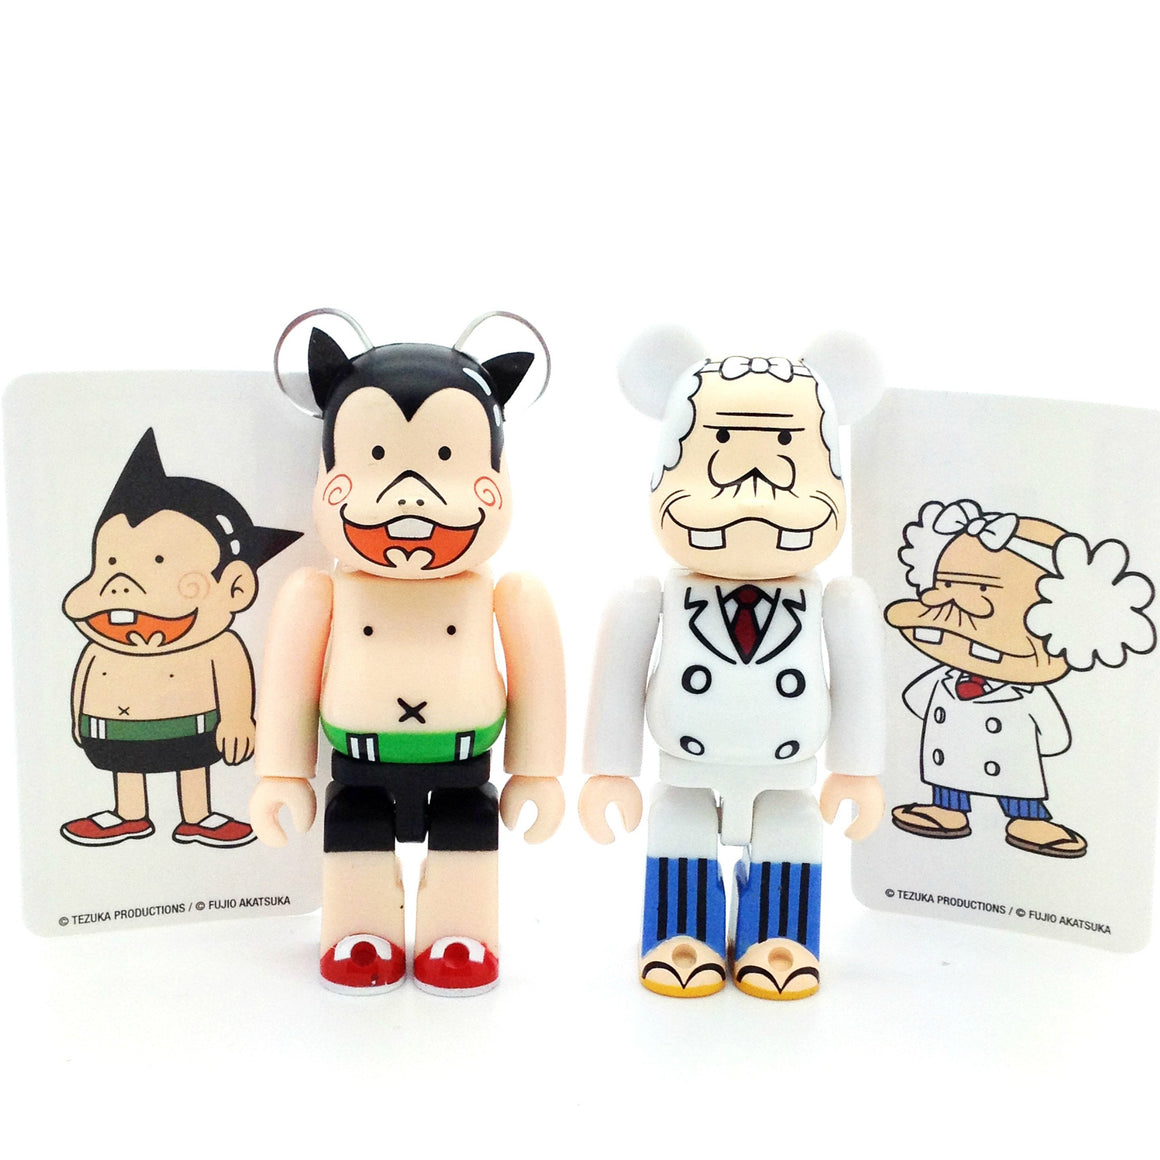 Bearbrick Series 32 - Astro Boy and Doctor Ochanomizu (Artist) (Set of 2)